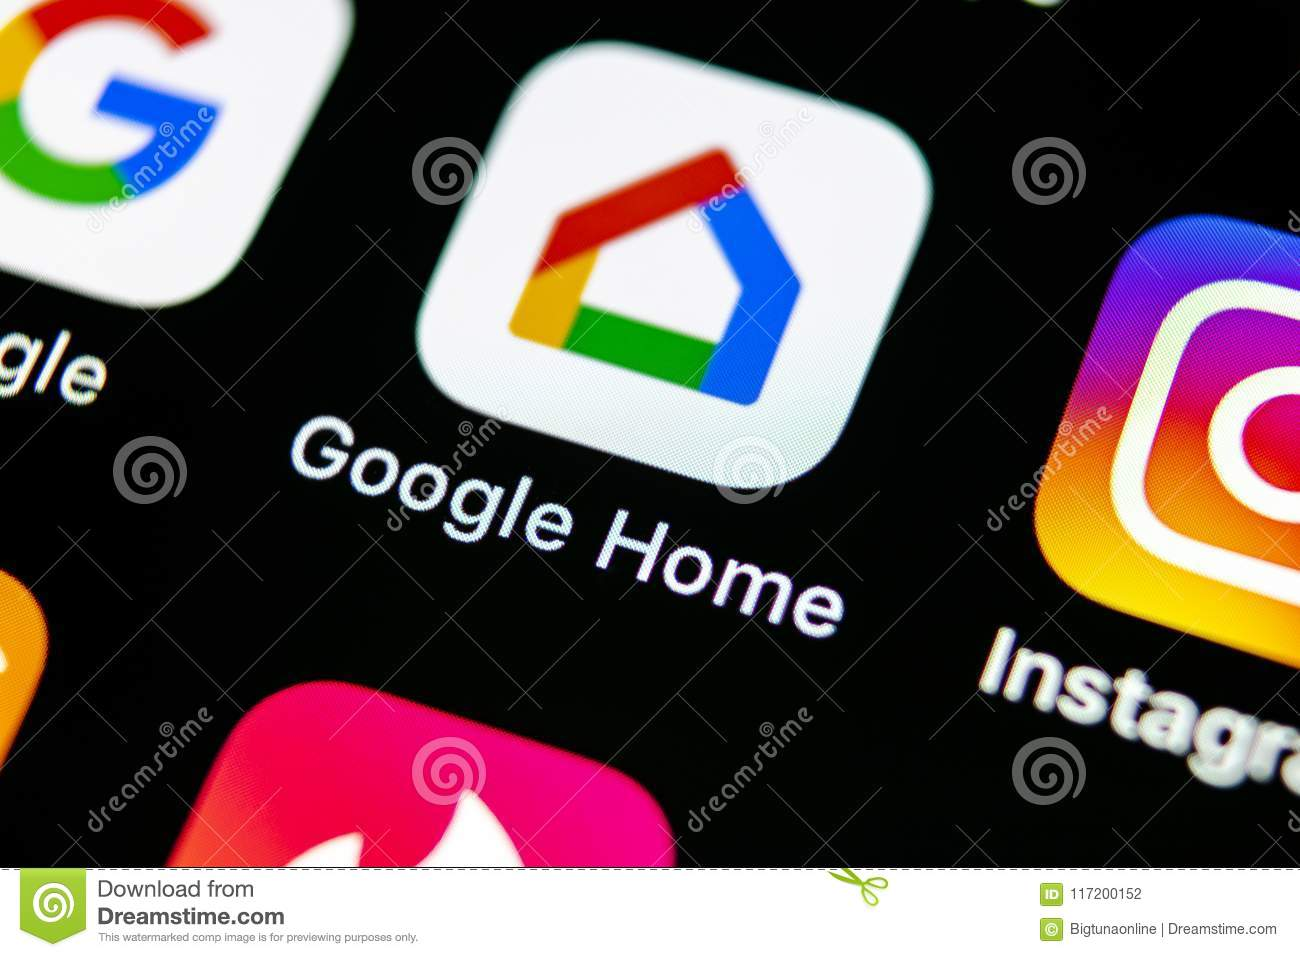 Google Home Application Icon On Apple IPhone X Smartphone